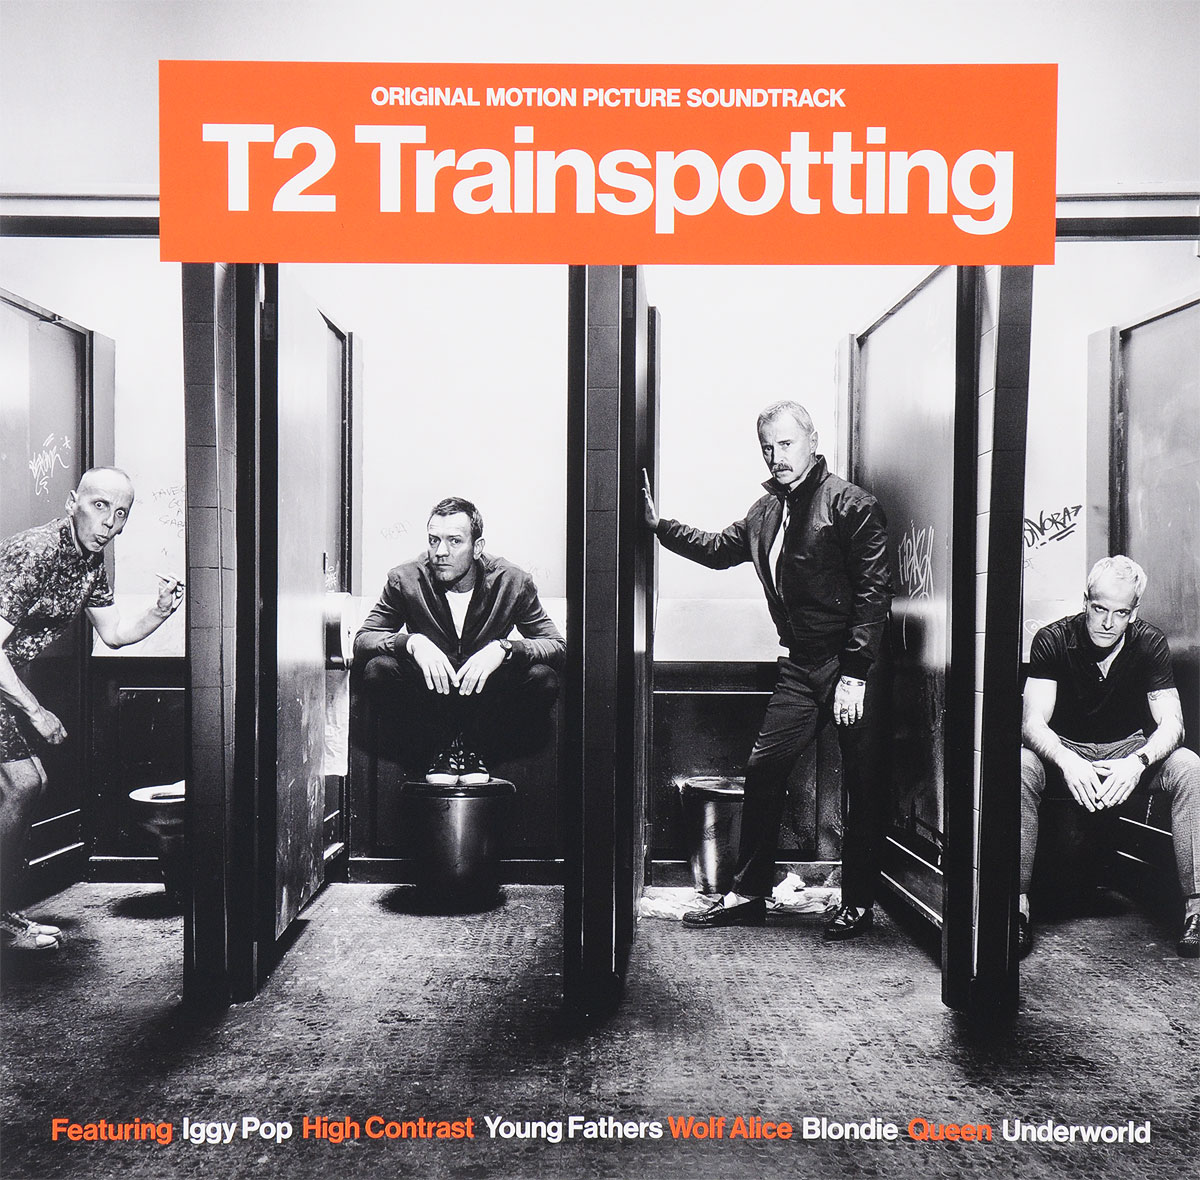 Фото - Игги Поп,High Contrast,Young Fathers,Frankie Goes To Hollywood,Юэн Бремнер,Underworld,Blondie,Queen,Run DMC,The Clash T2 Trainspotting. Original Motion Picture Soundtrack (2 LP) contrast lace keyhole back blouse